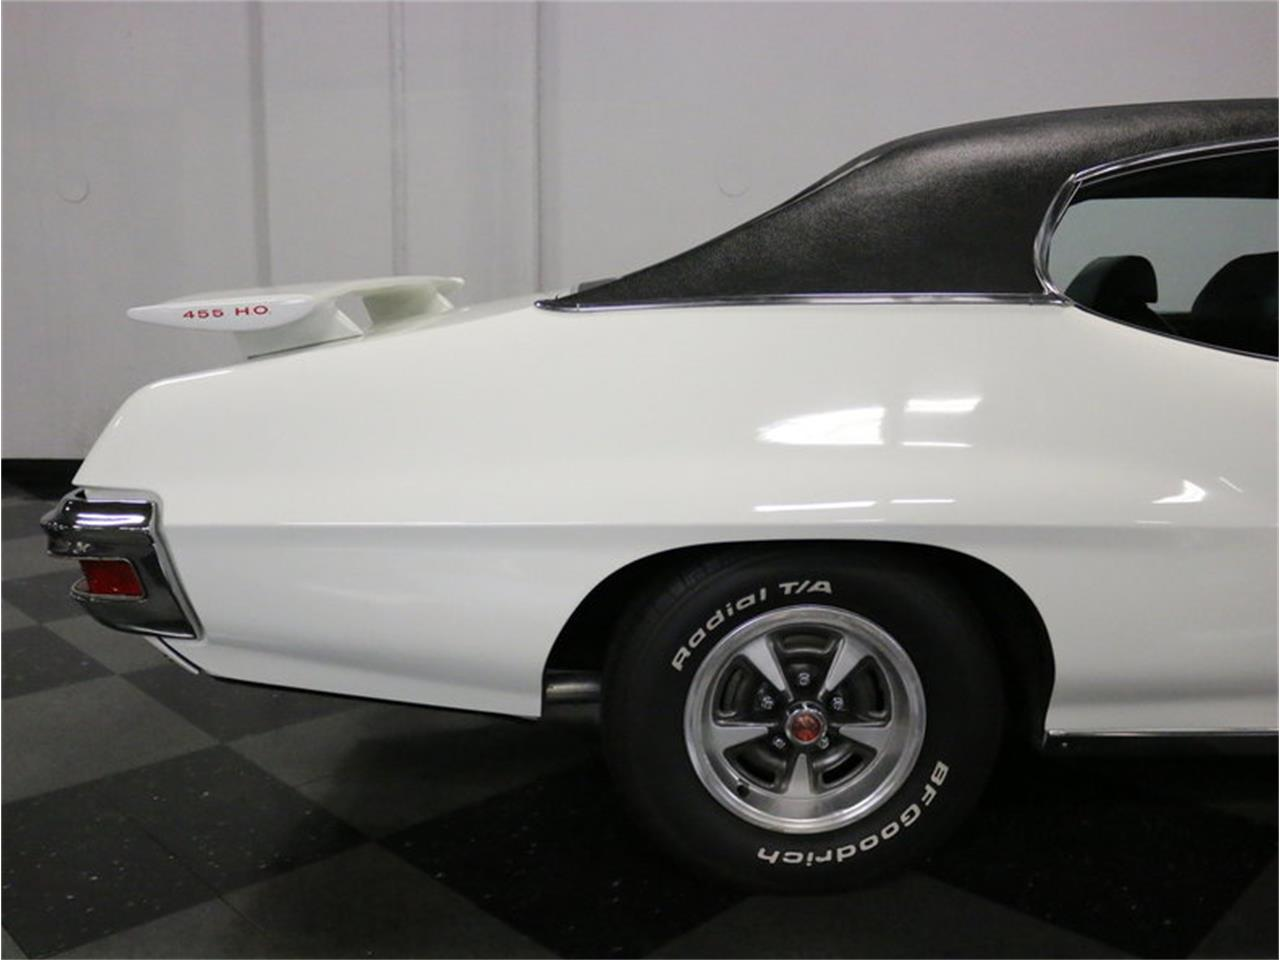 Large Picture of 1971 Pontiac GTO located in Texas Offered by Streetside Classics - Dallas / Fort Worth - MOBK